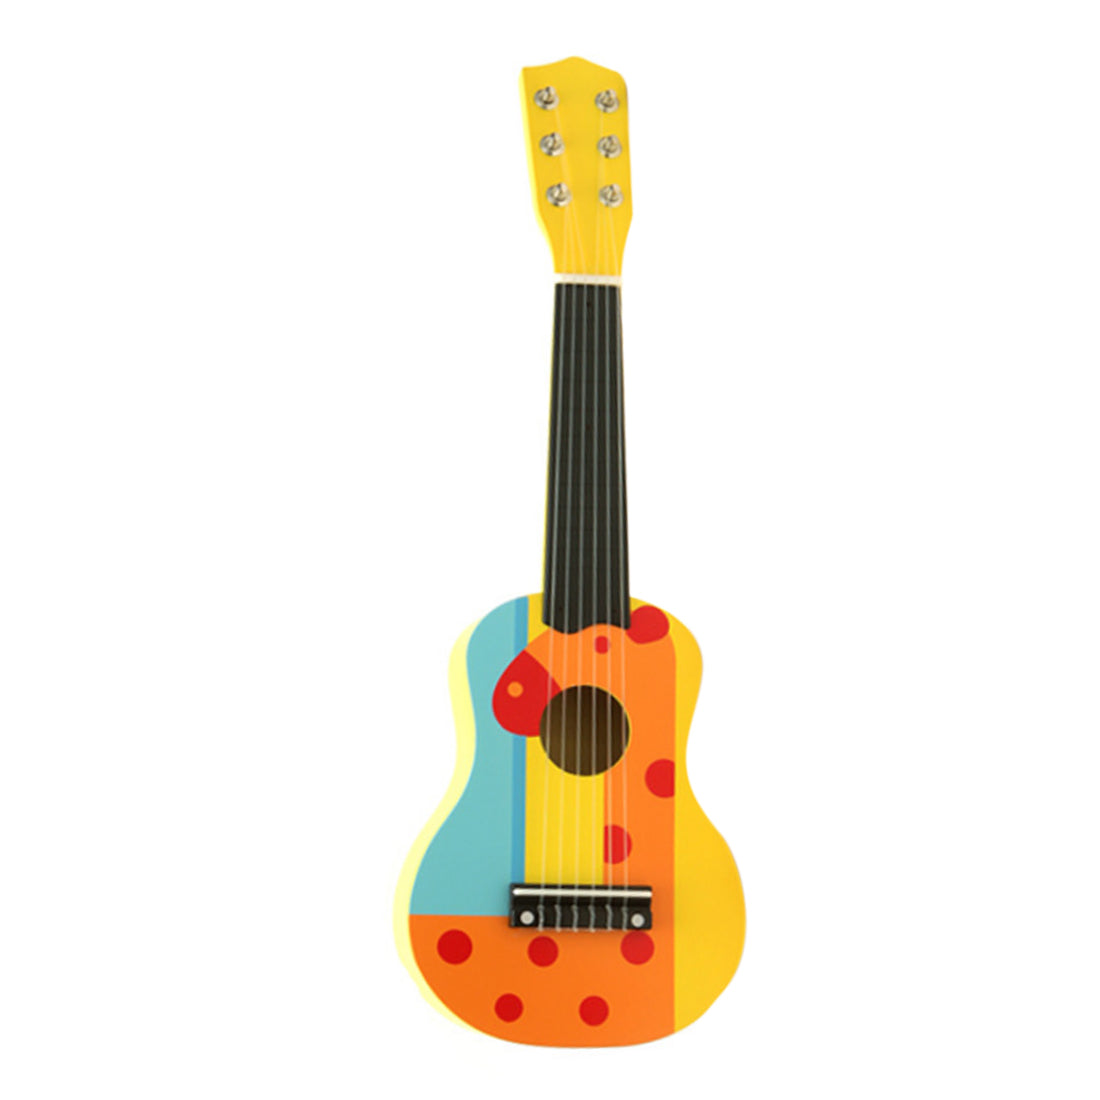 Costbuys  21 Inch Cute Cartoon 6 String Mini Wooden Guitar Toys Kids Musical Instruments for Birthday Gifts - 1